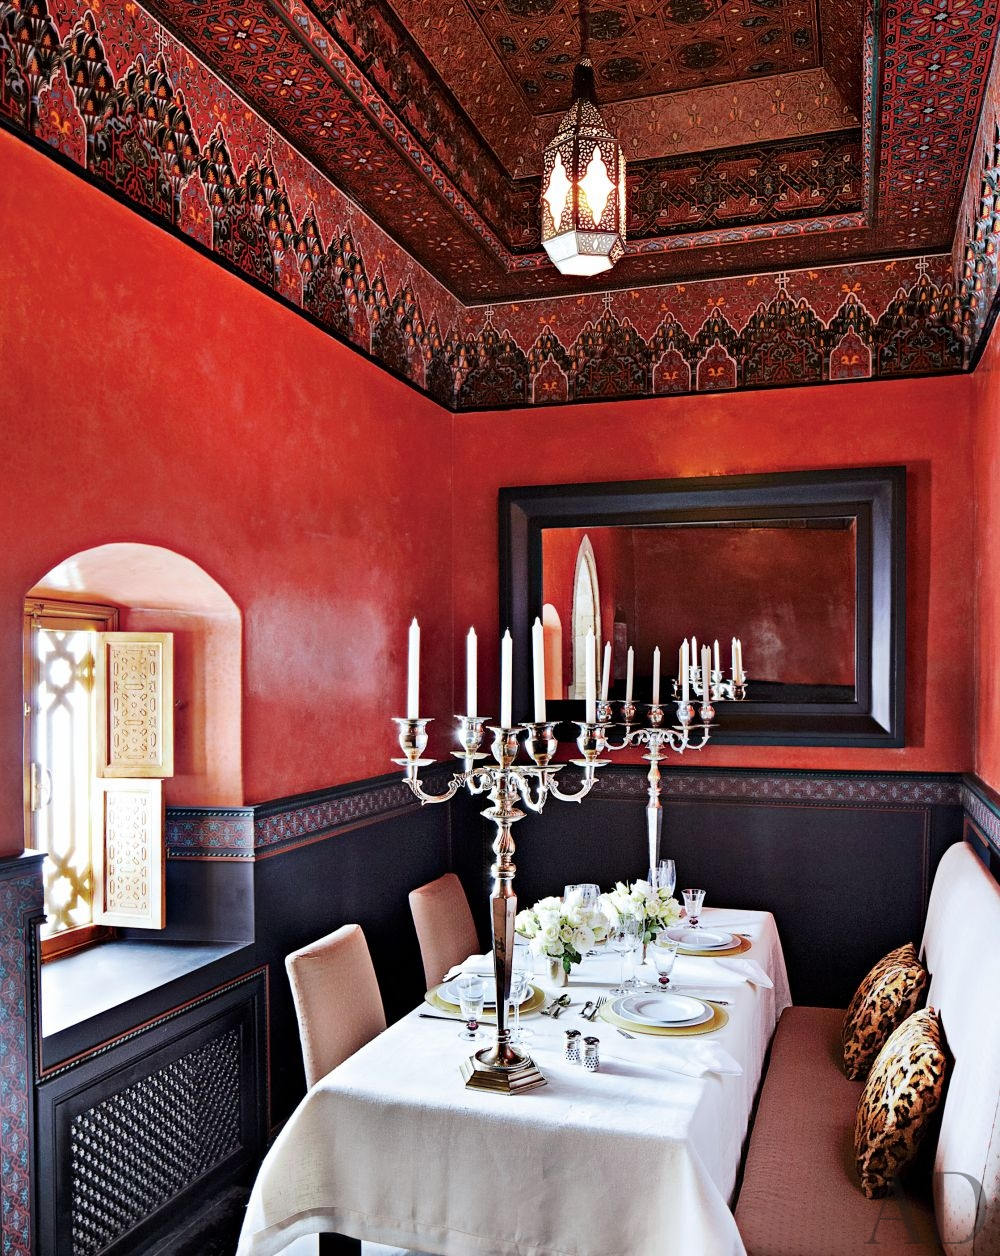 moroccan decor tiles red wall better decorating bible blog ideas how to exotic dining room sg designs ltd essaouira morocco 201205 2 1000 watermarked jpg